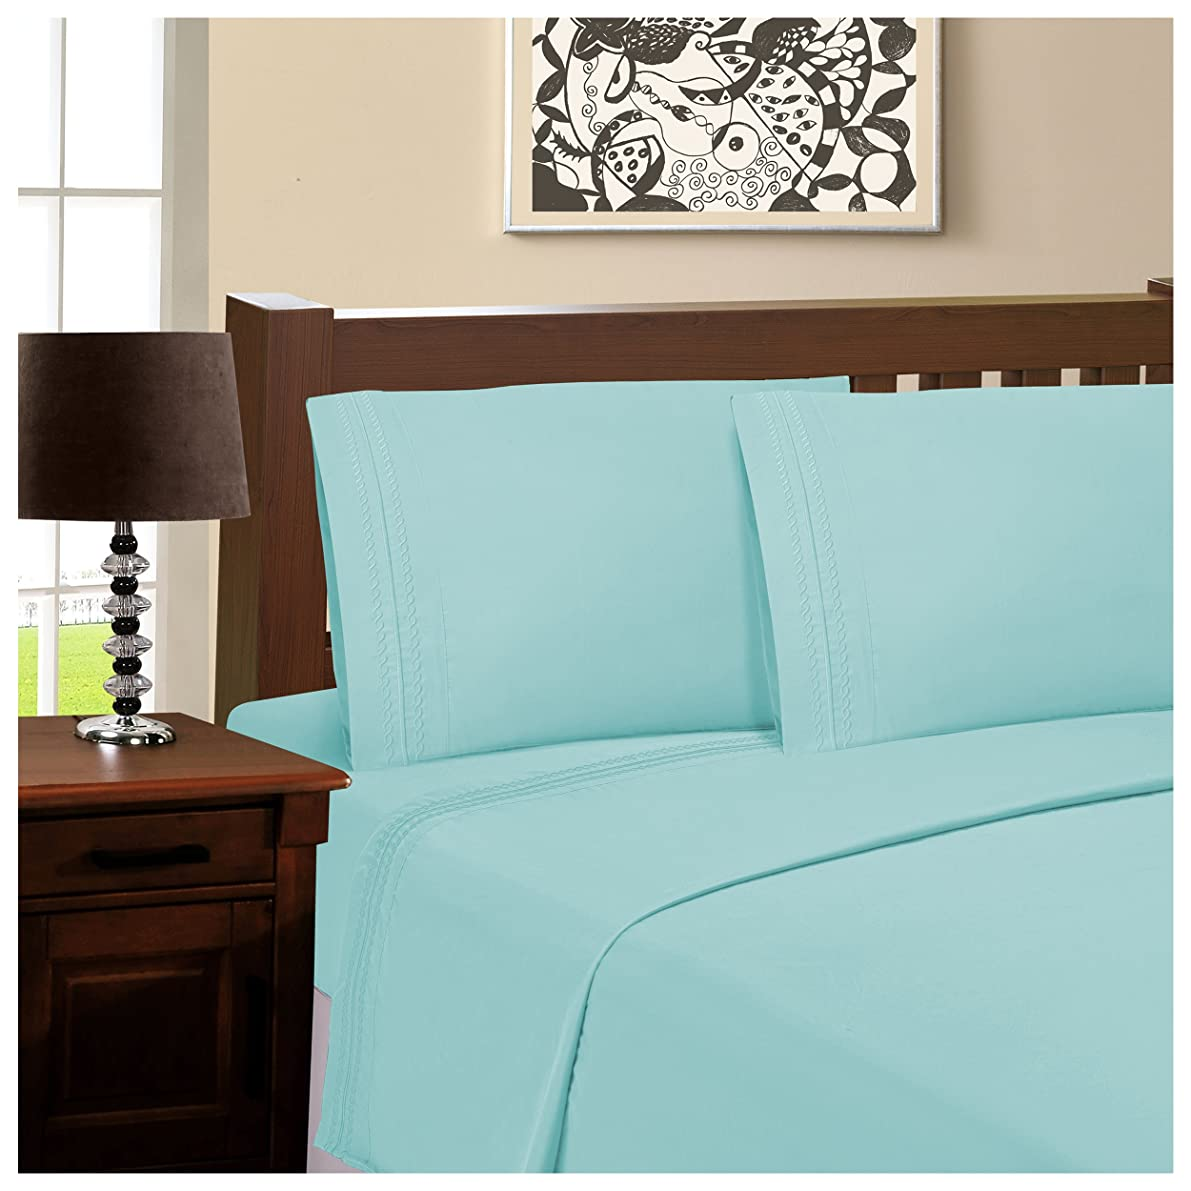 """Superior Infinity Embroidered Luxury Soft, Cooling 100% Brushed Microfiber Pillowcase Set of 2, Light Weight and Wrinkle Resistant - 20"""" x 40"""" King Pillowcase, Aqua Marine"""